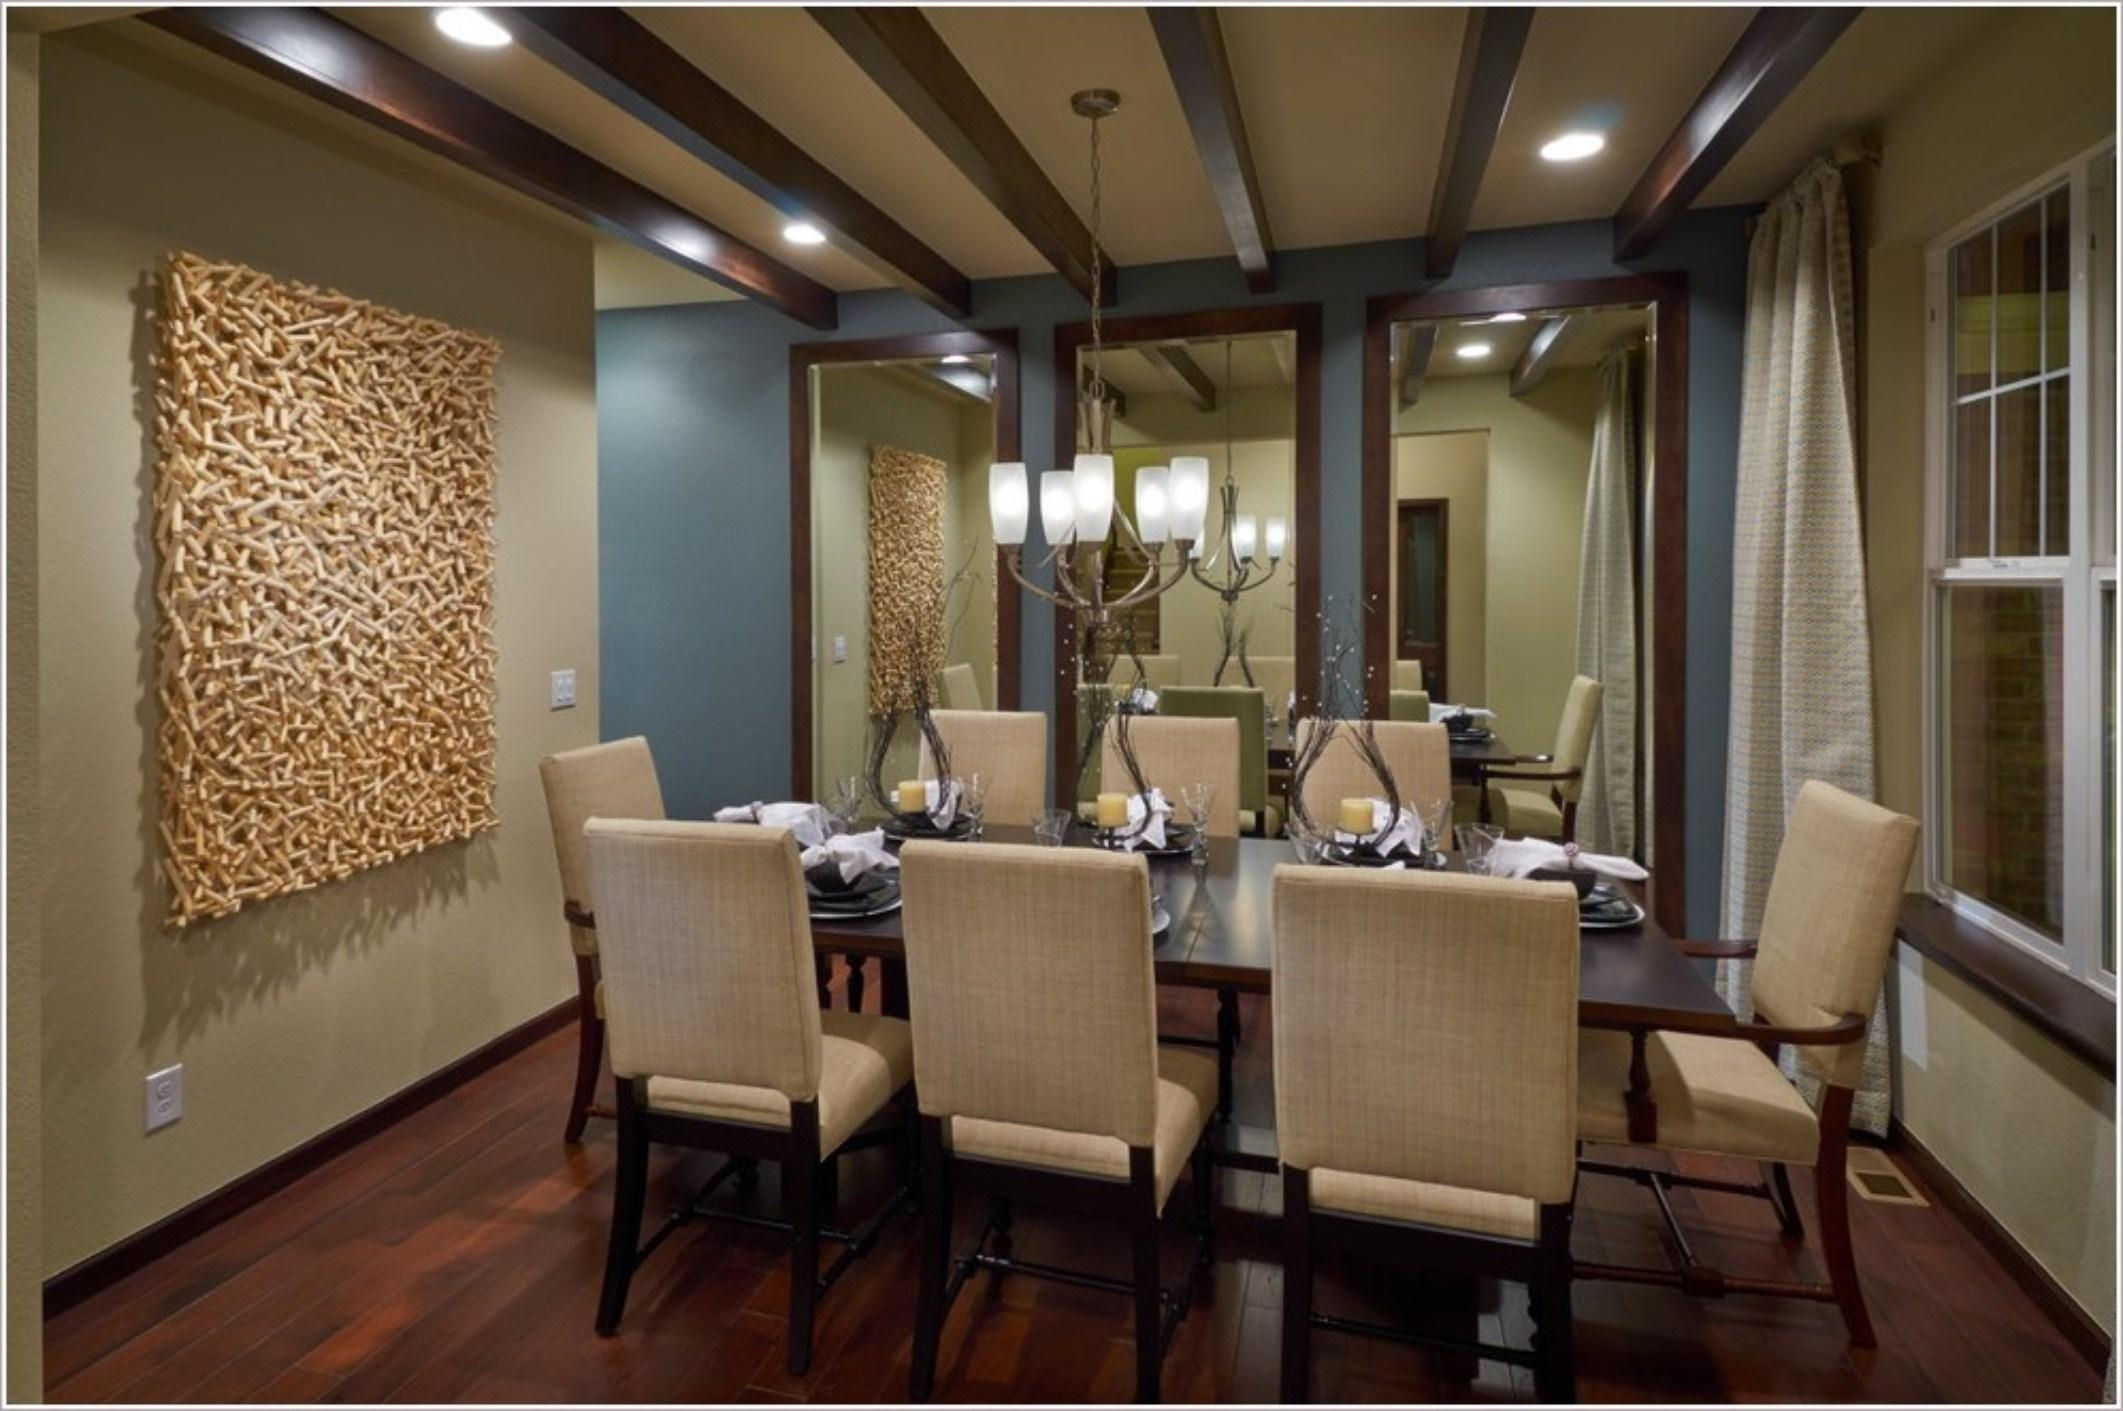 Formal Dining Room Drapes With Modern Chandeliers And Wall Regarding Formal Dining Room Wall Art (Image 13 of 20)